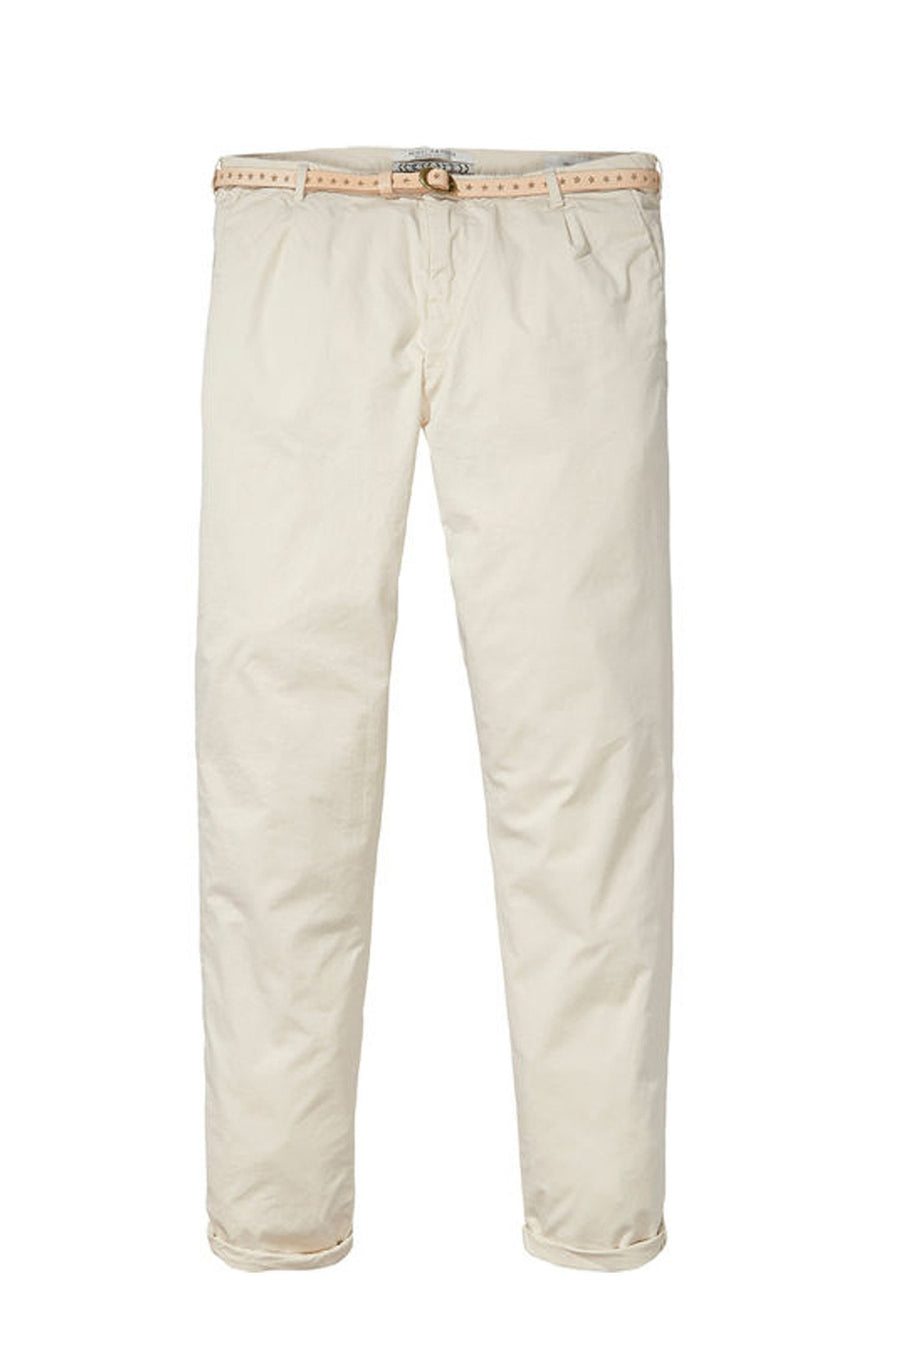 lightweight-stretch-chino-relaxed-fit-by-maison-scotch